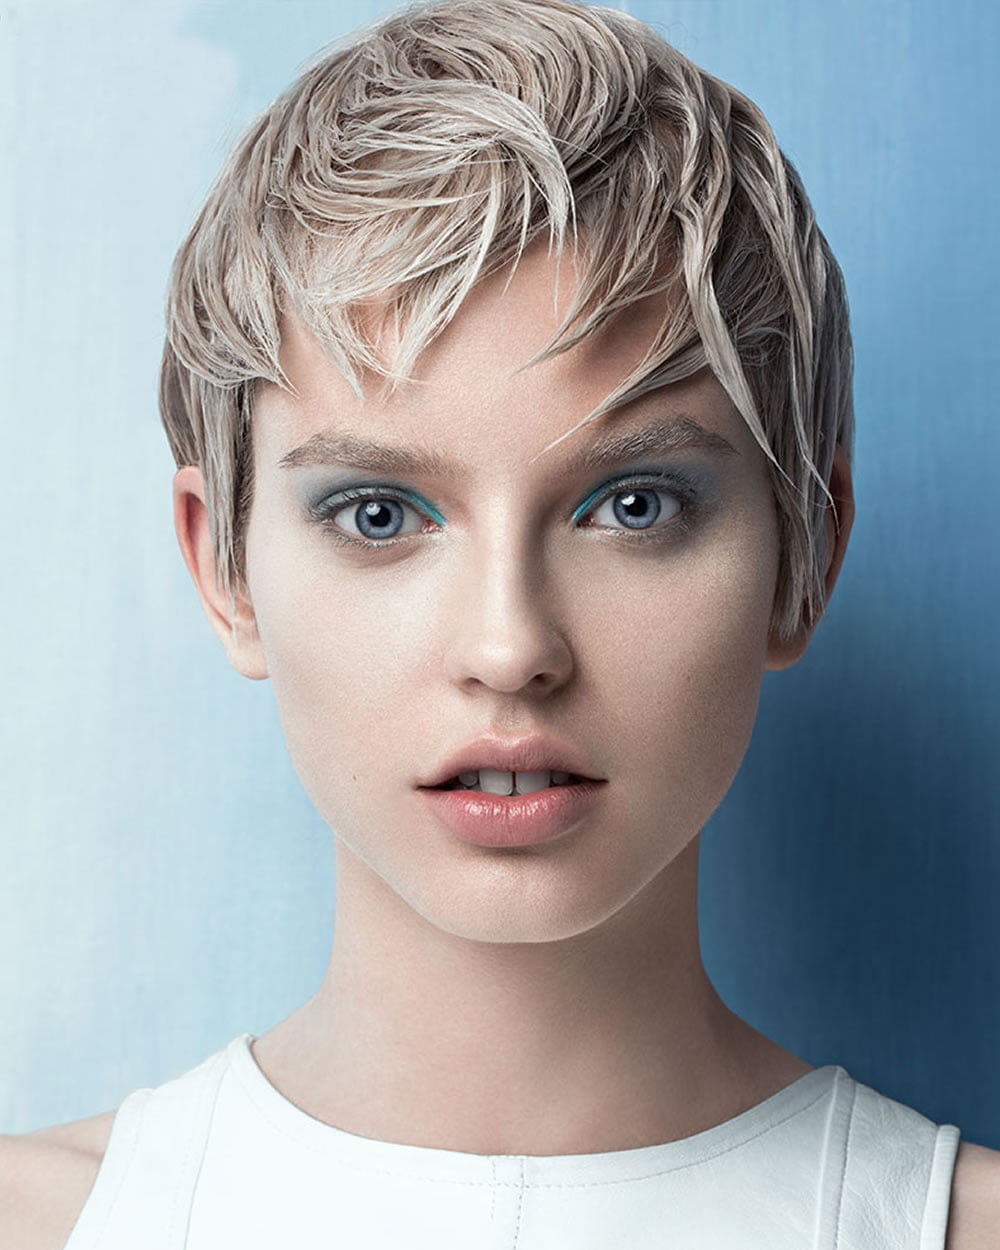 2018 Spring Short Haircut Summer 2019 Pixie Hairstyle for ...